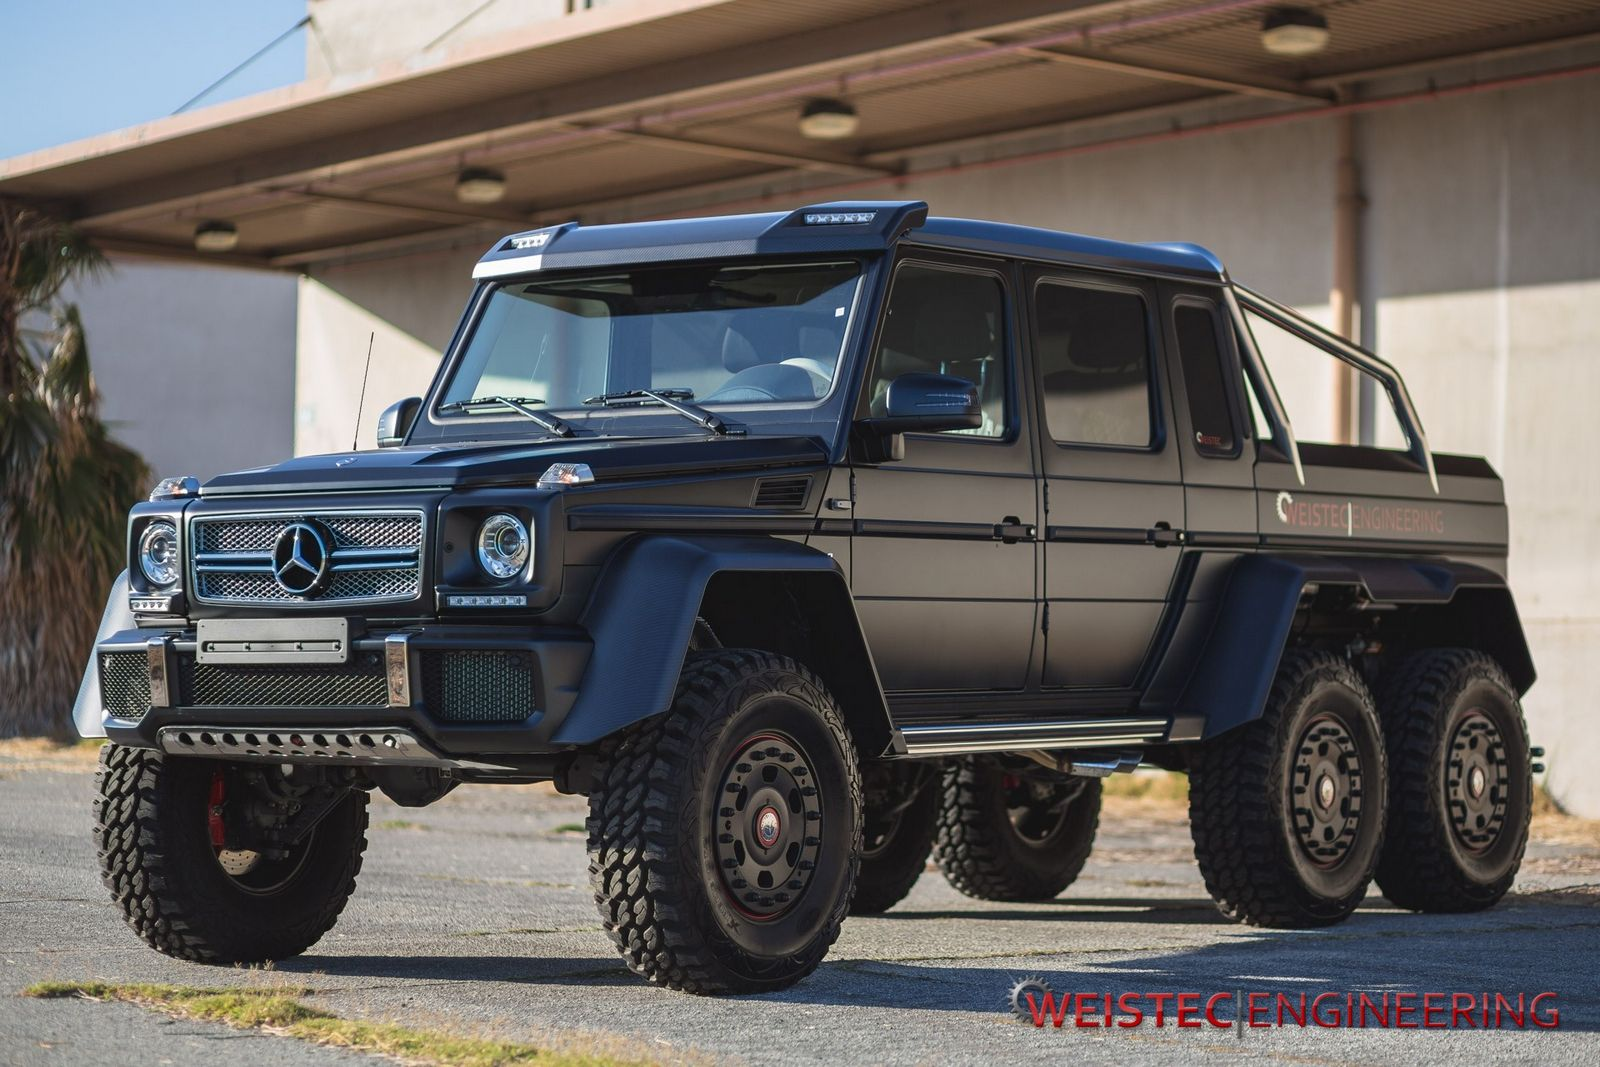 Official mercedes benz g63 amg 6x6 by weistec engineering for Mercedes benz g63 amg for sale